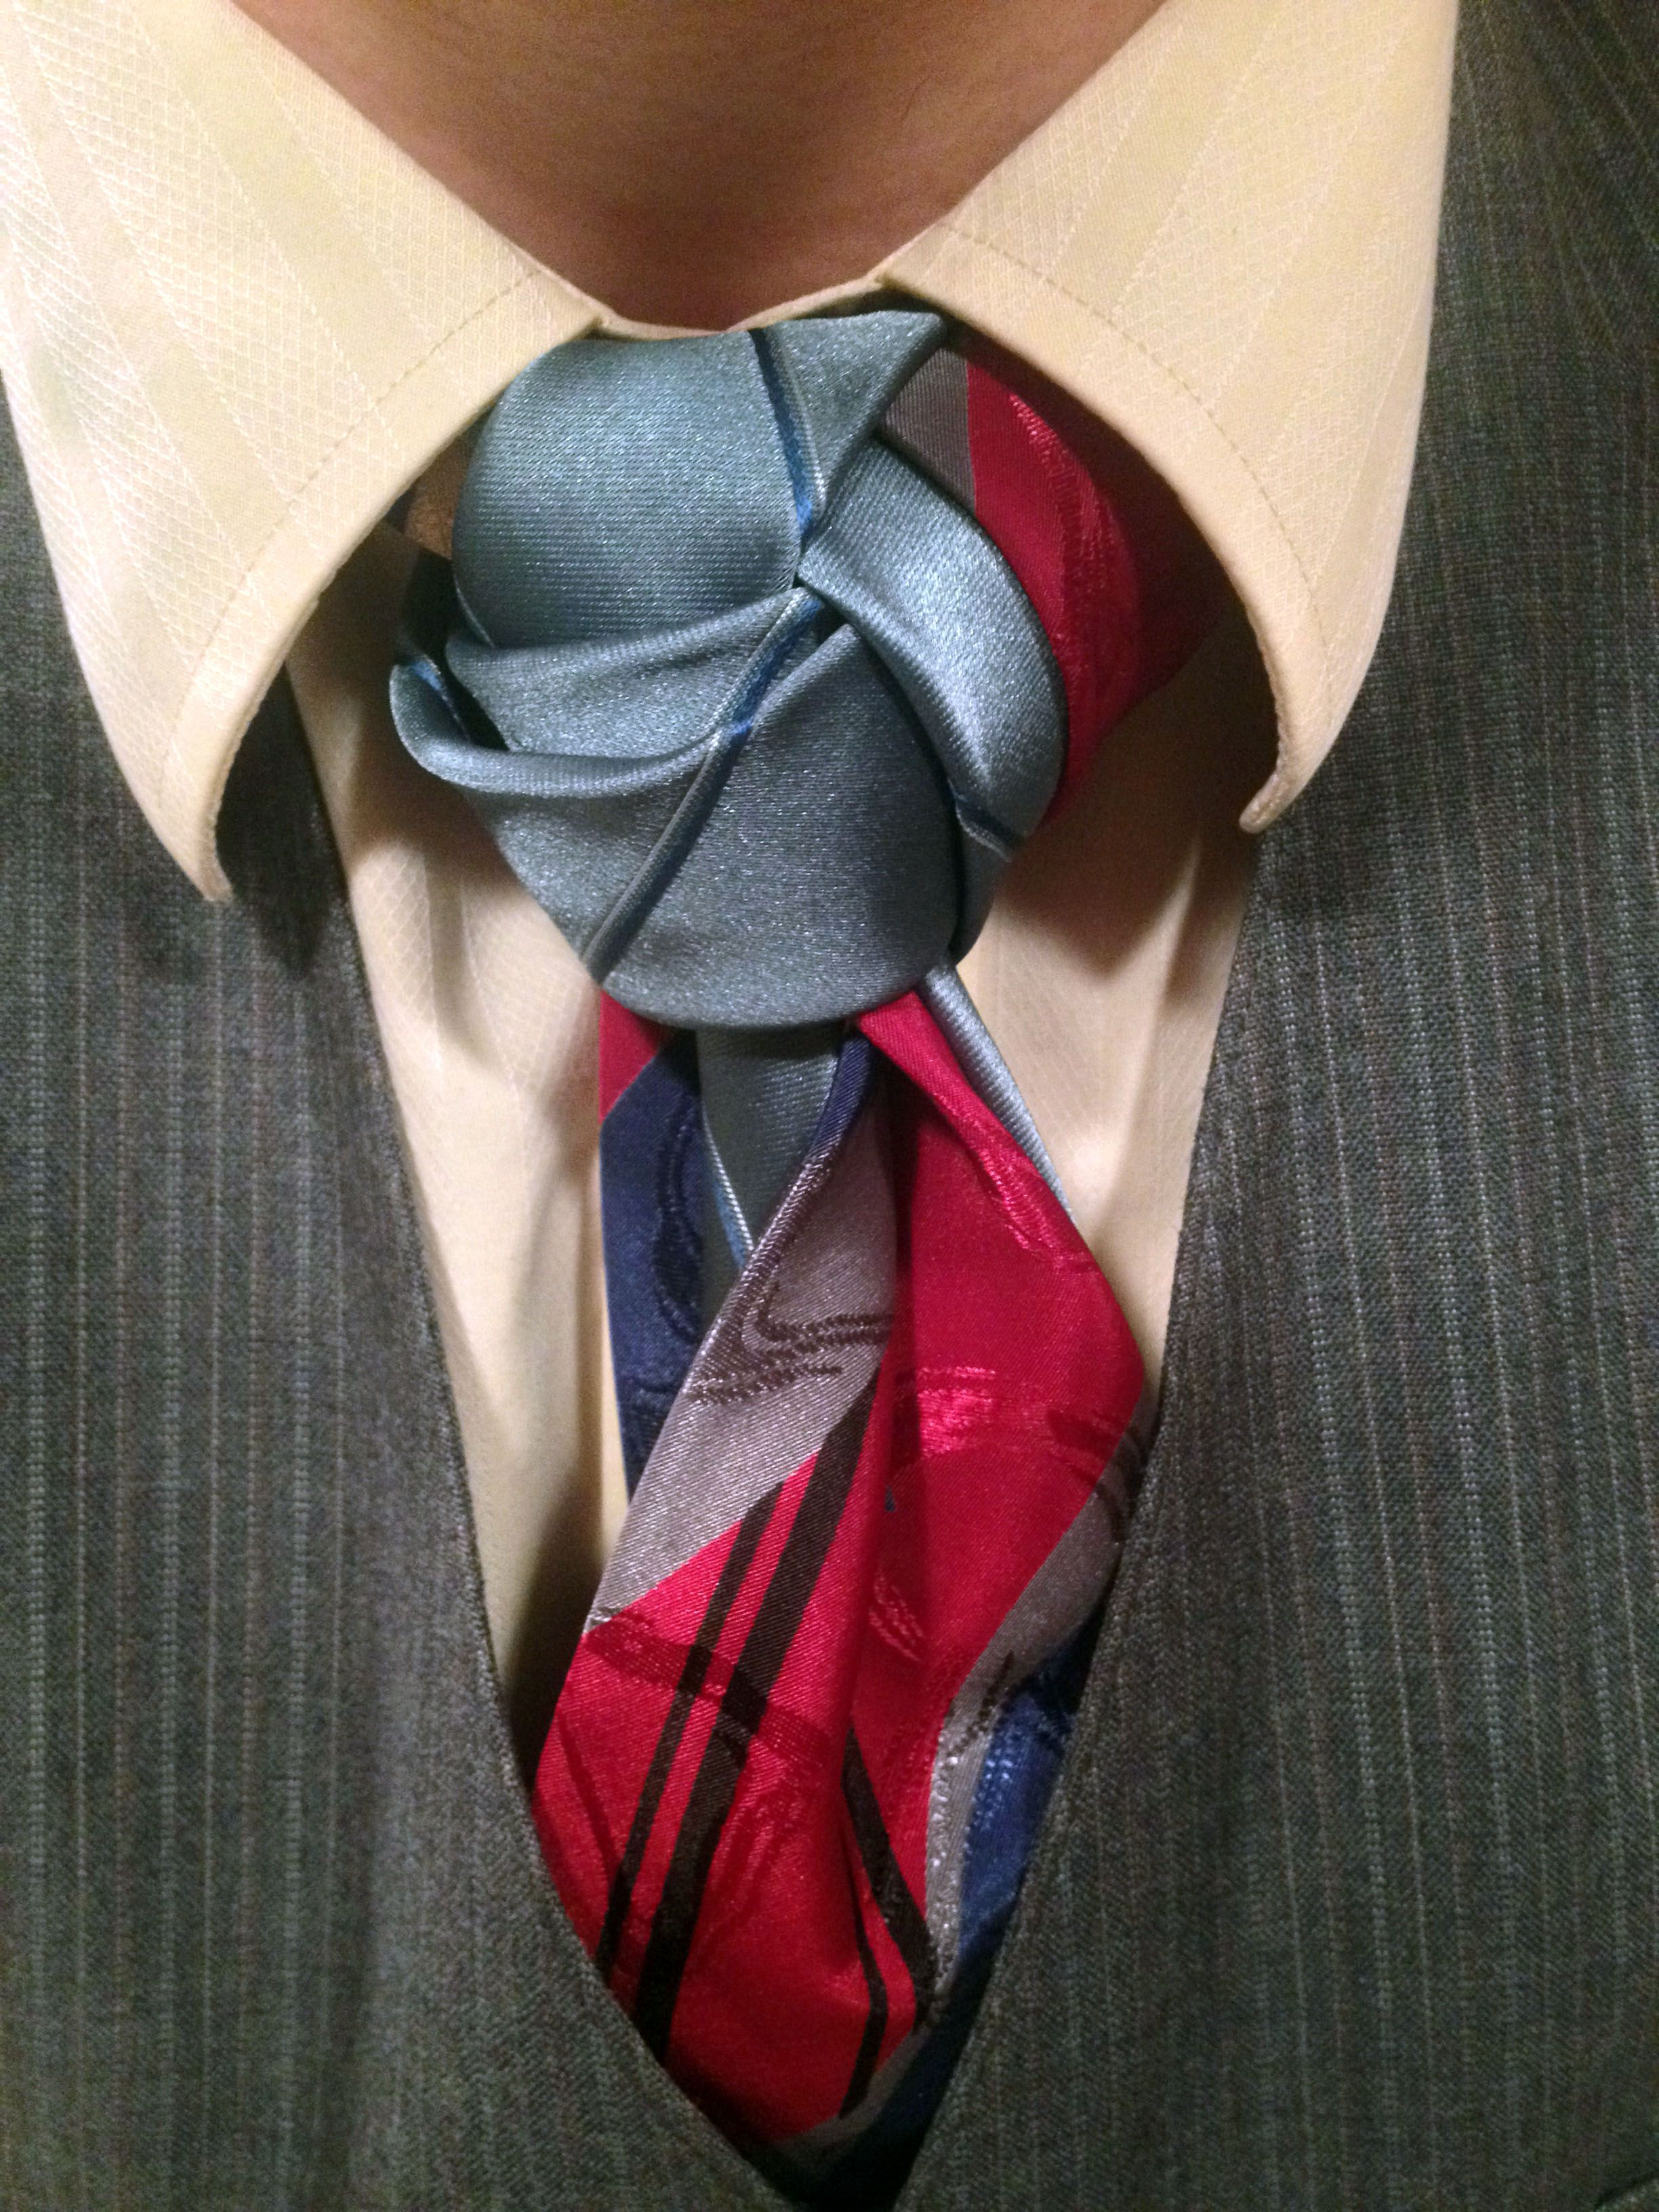 I'm not sure if I like the knot or the way the ties flow out directly below it…